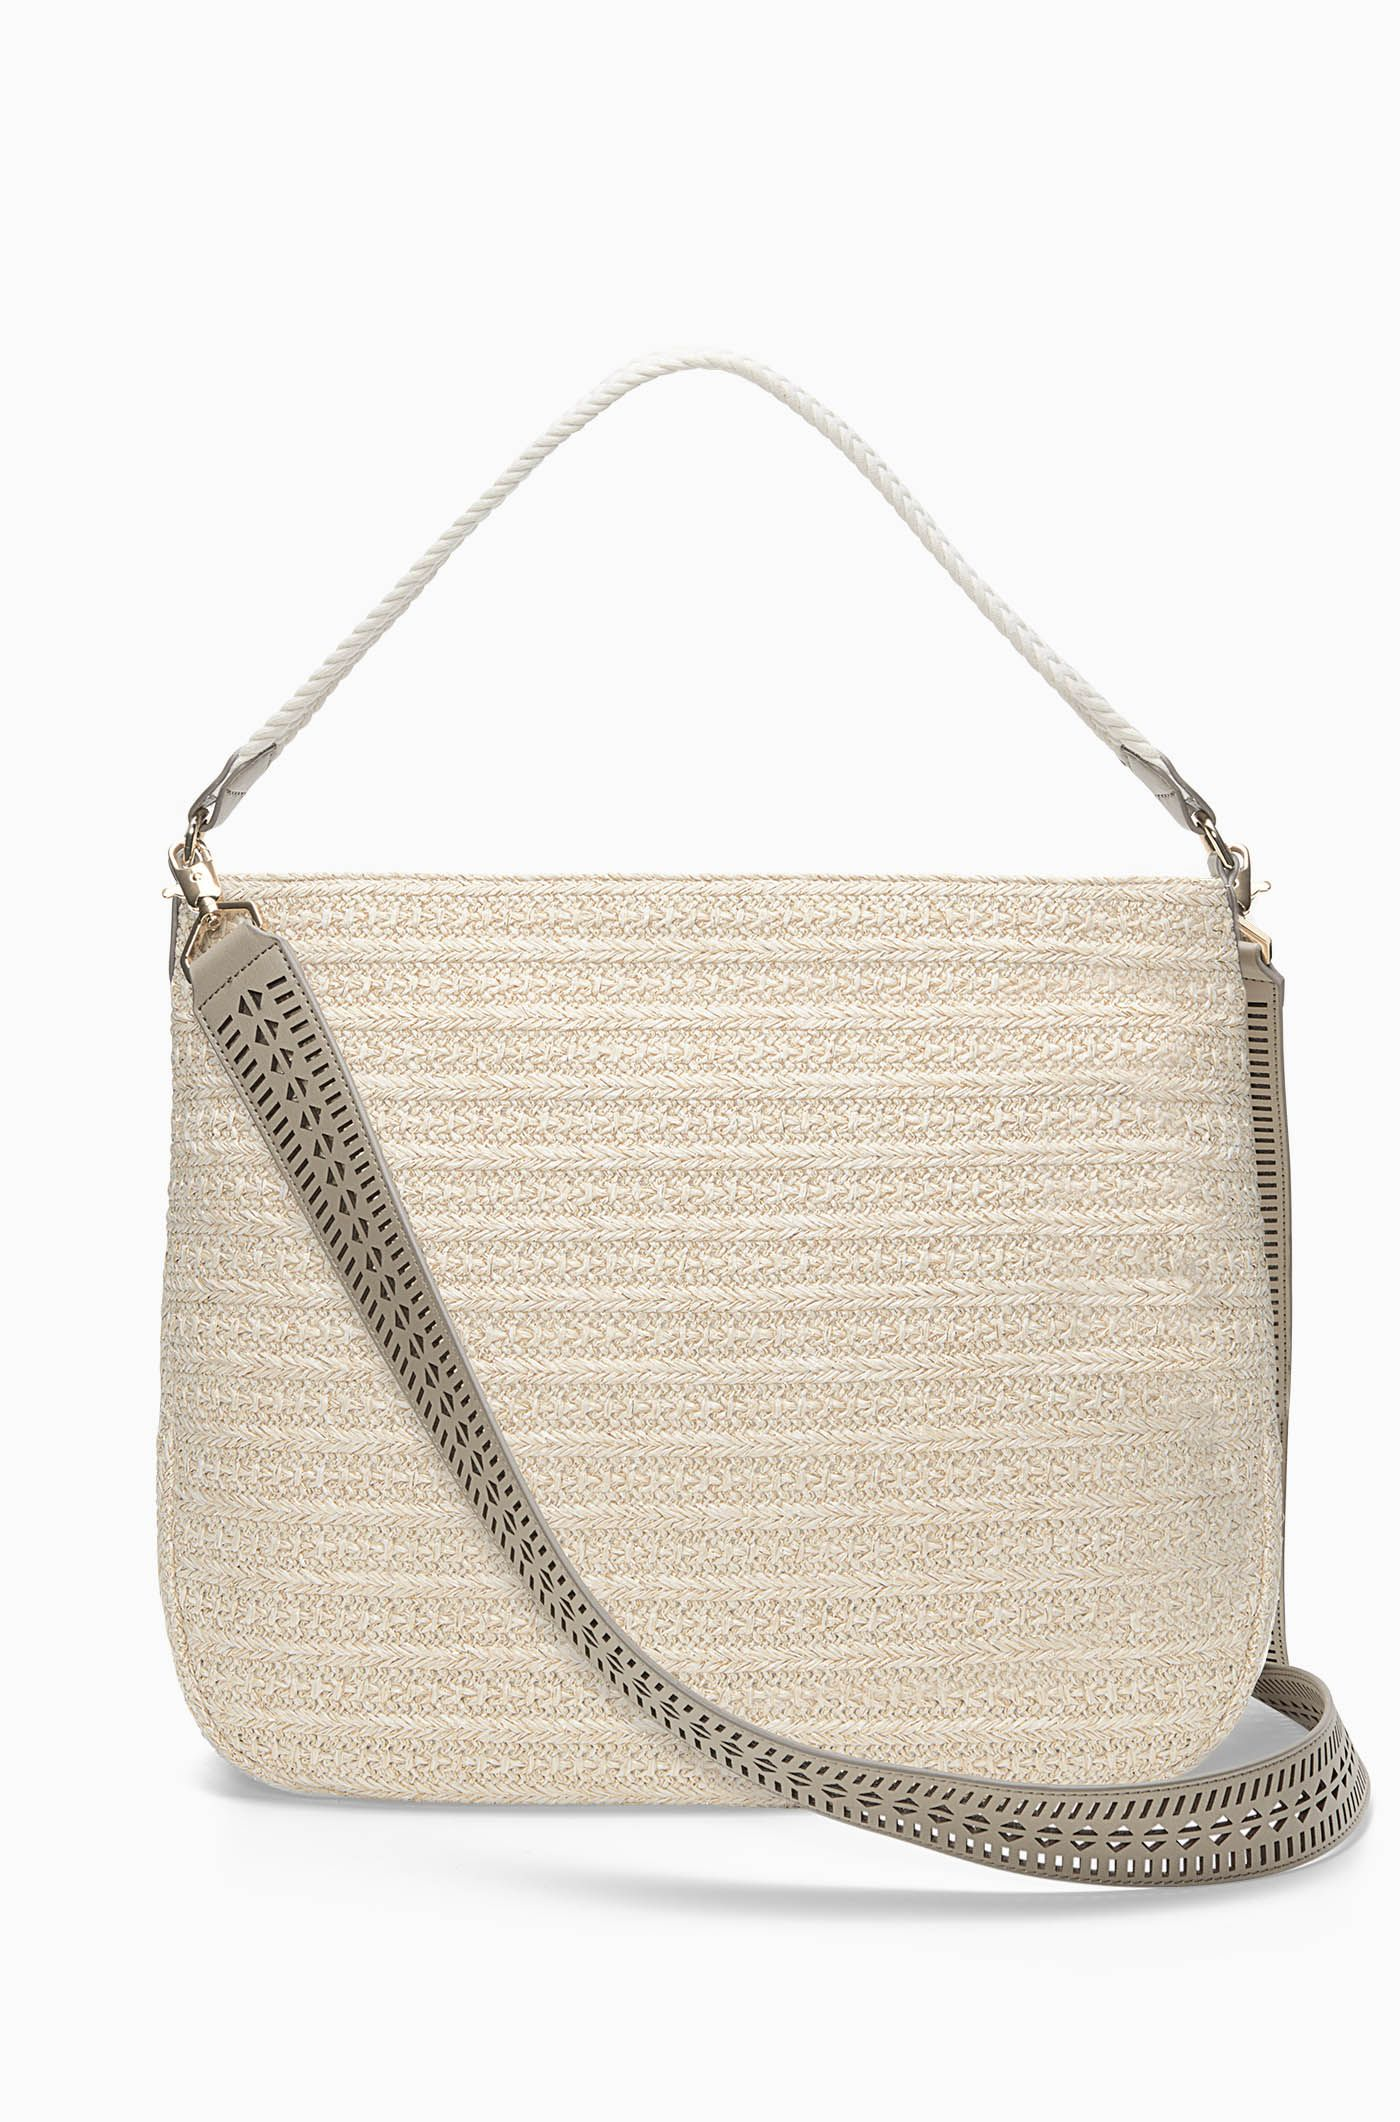 3e3c0e291a9 Ellie Hobo | Styled with Stella & Dot - Order at www.stelladot.com ...